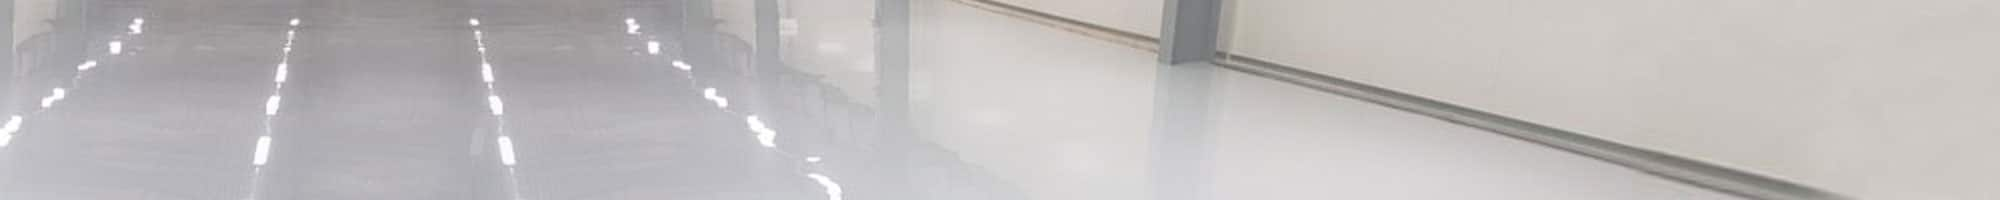 Cemplas - Banner - Resin Floors & Coatings - Image 2